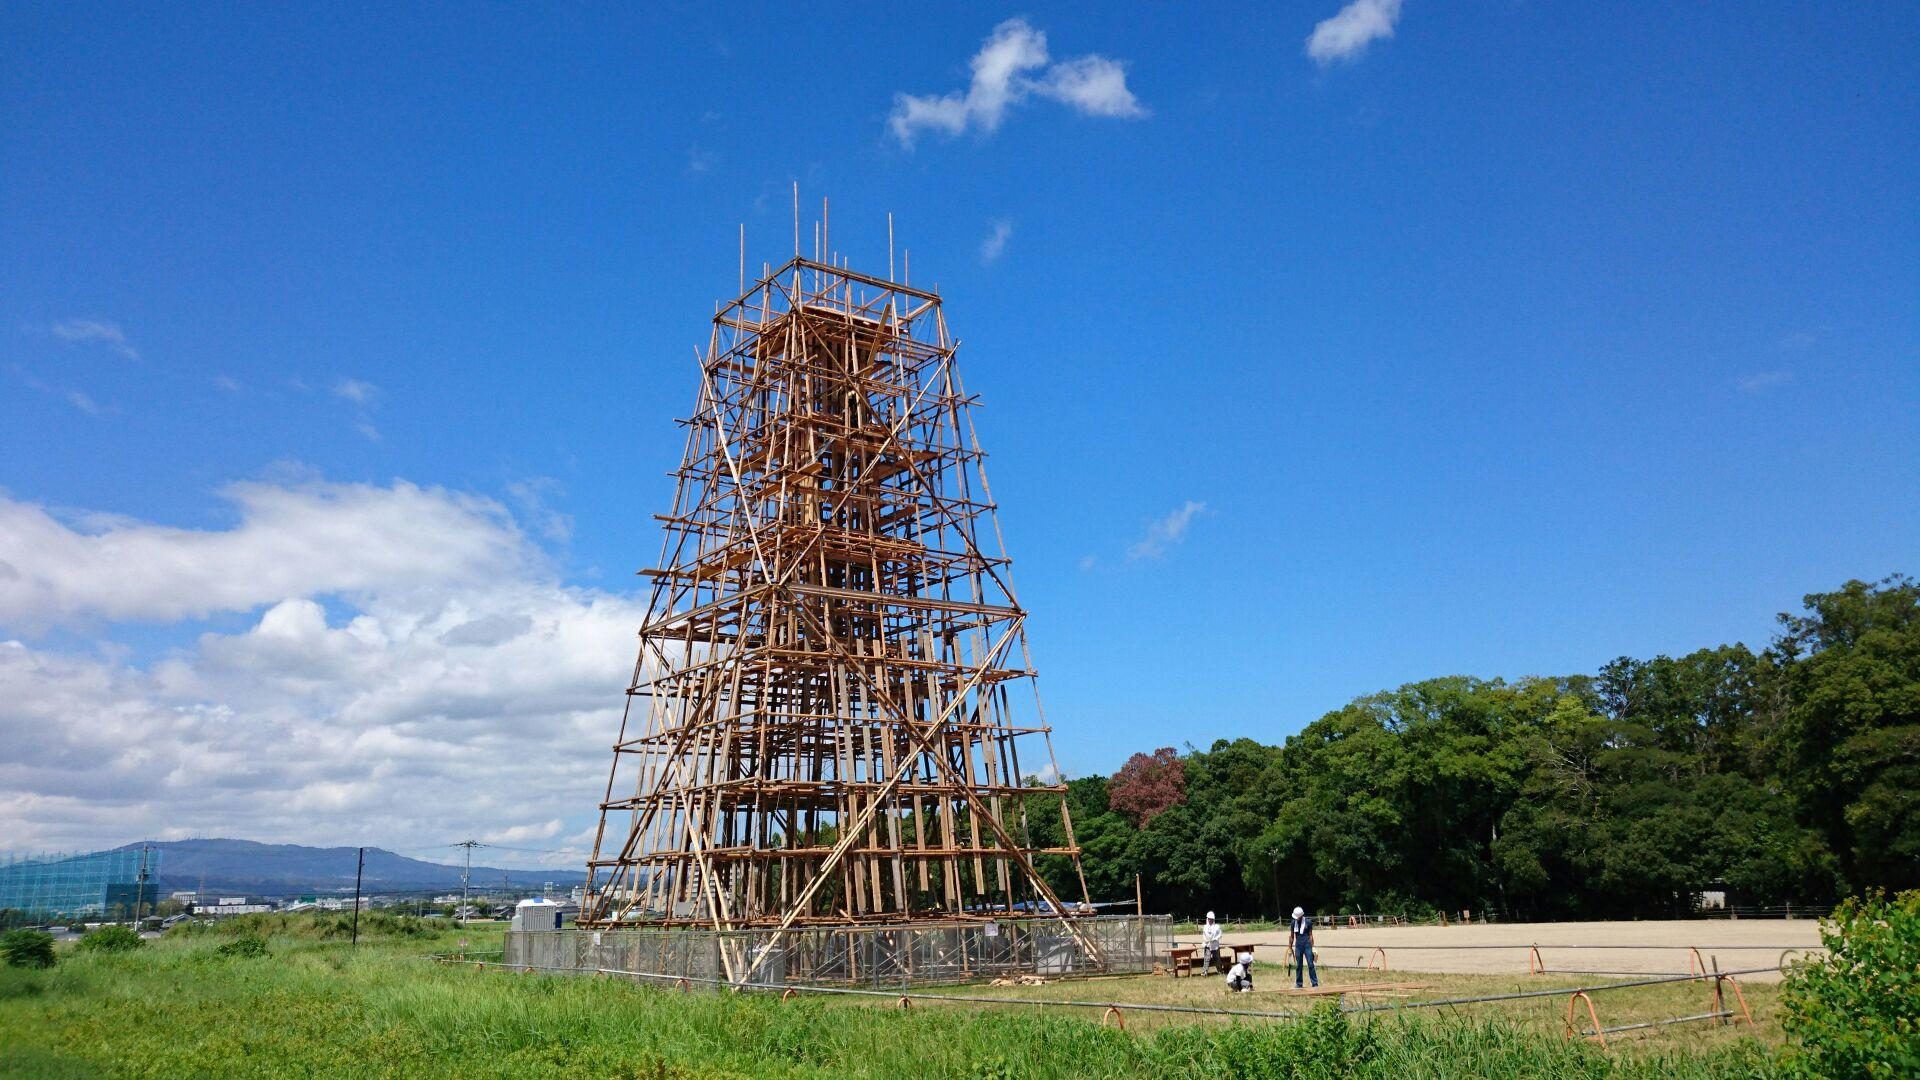 Tower of scaffolding